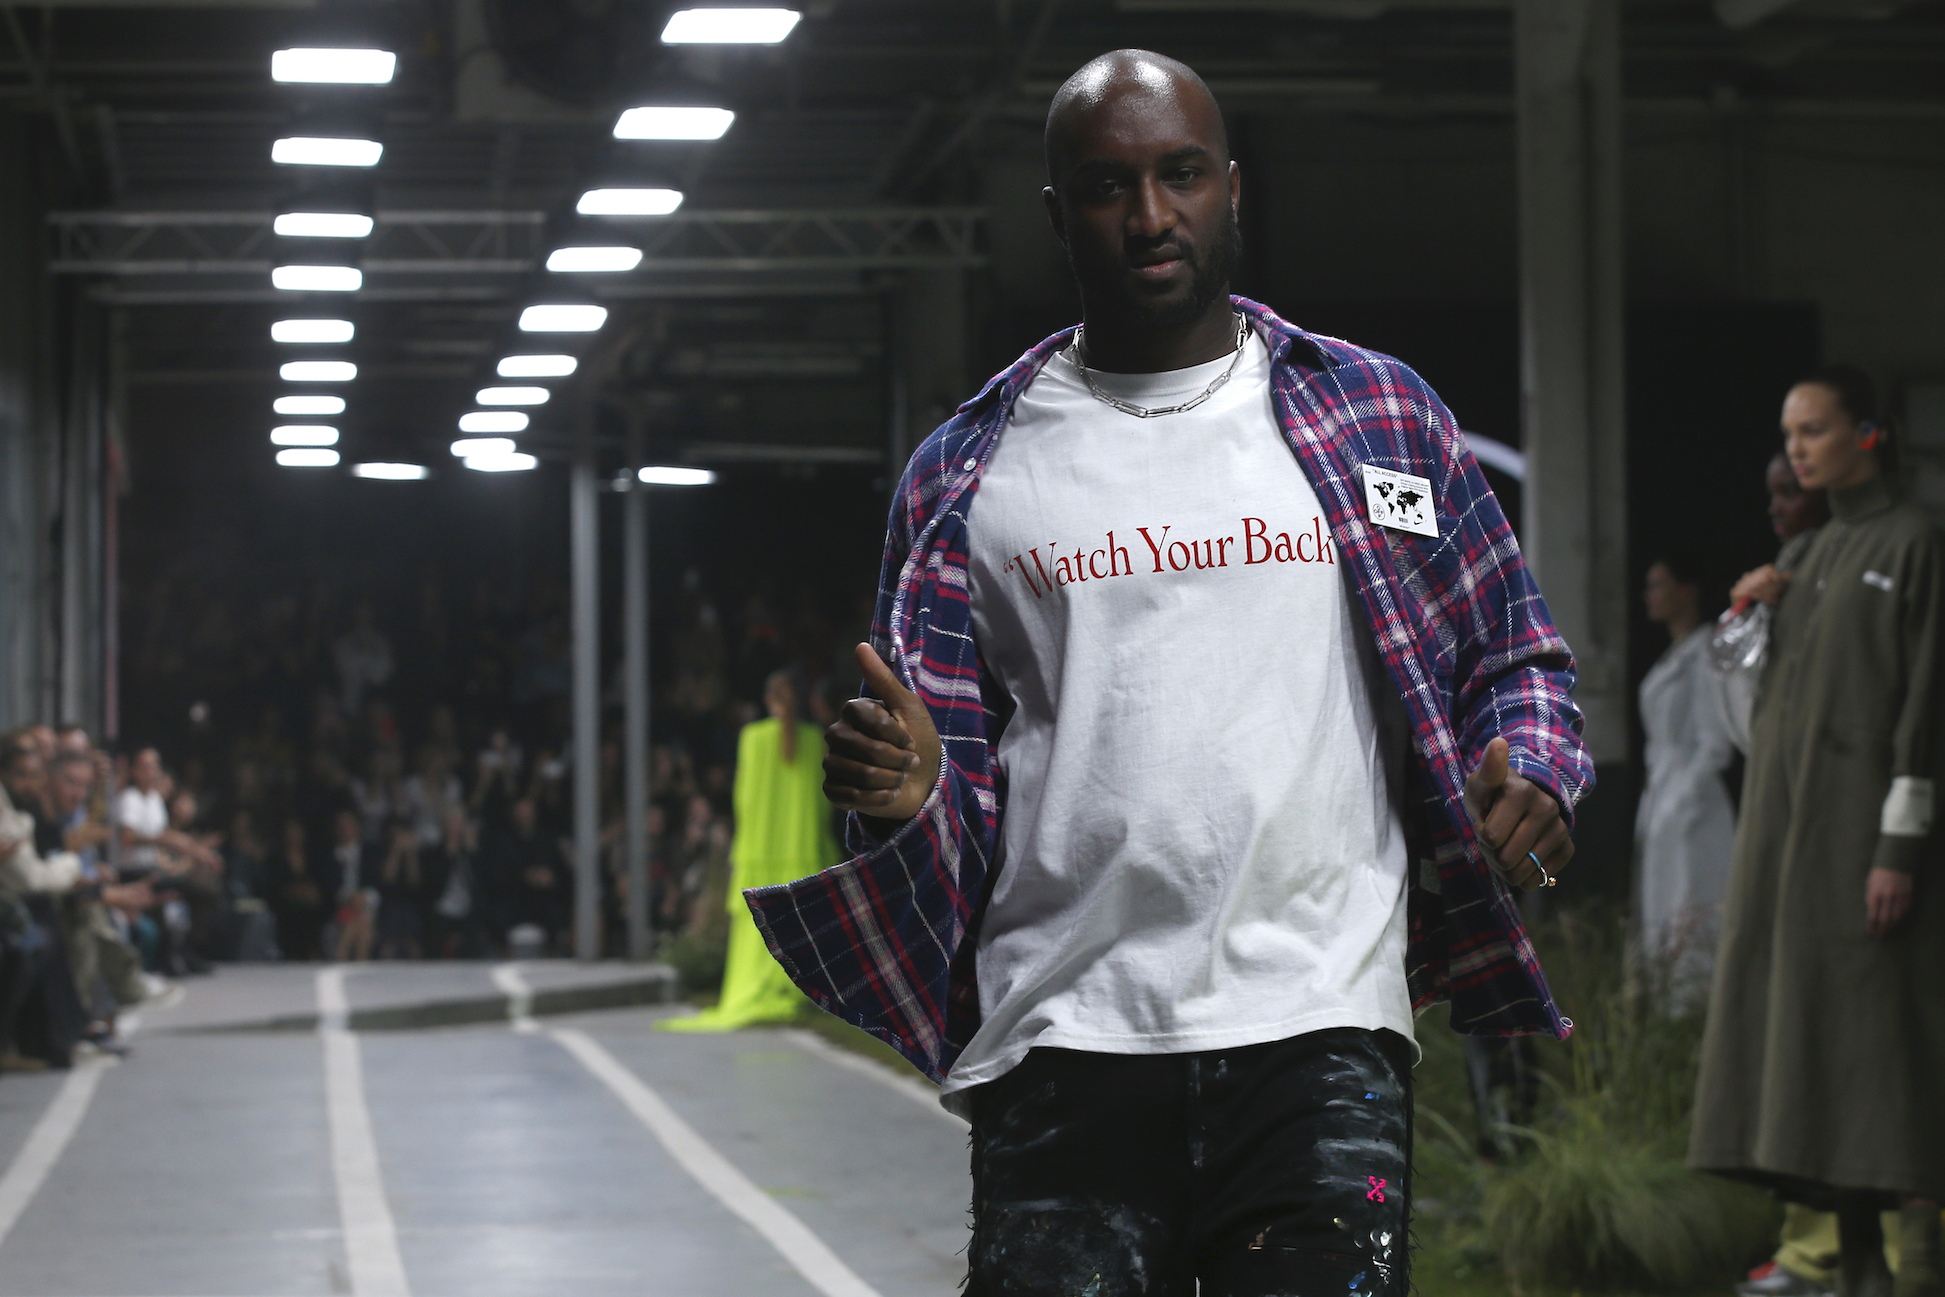 One of fashion's busiest A-listers appears to be shifting his day-to-day responsibilities in a big way. Virgil Abloh is selling a 60 percent stake in Off-White LLC, the trademark owner of his Off-White brand, to LVMH Moët Hennessy Louis Vuitton as he takes on a larger role at the French luxury giant.